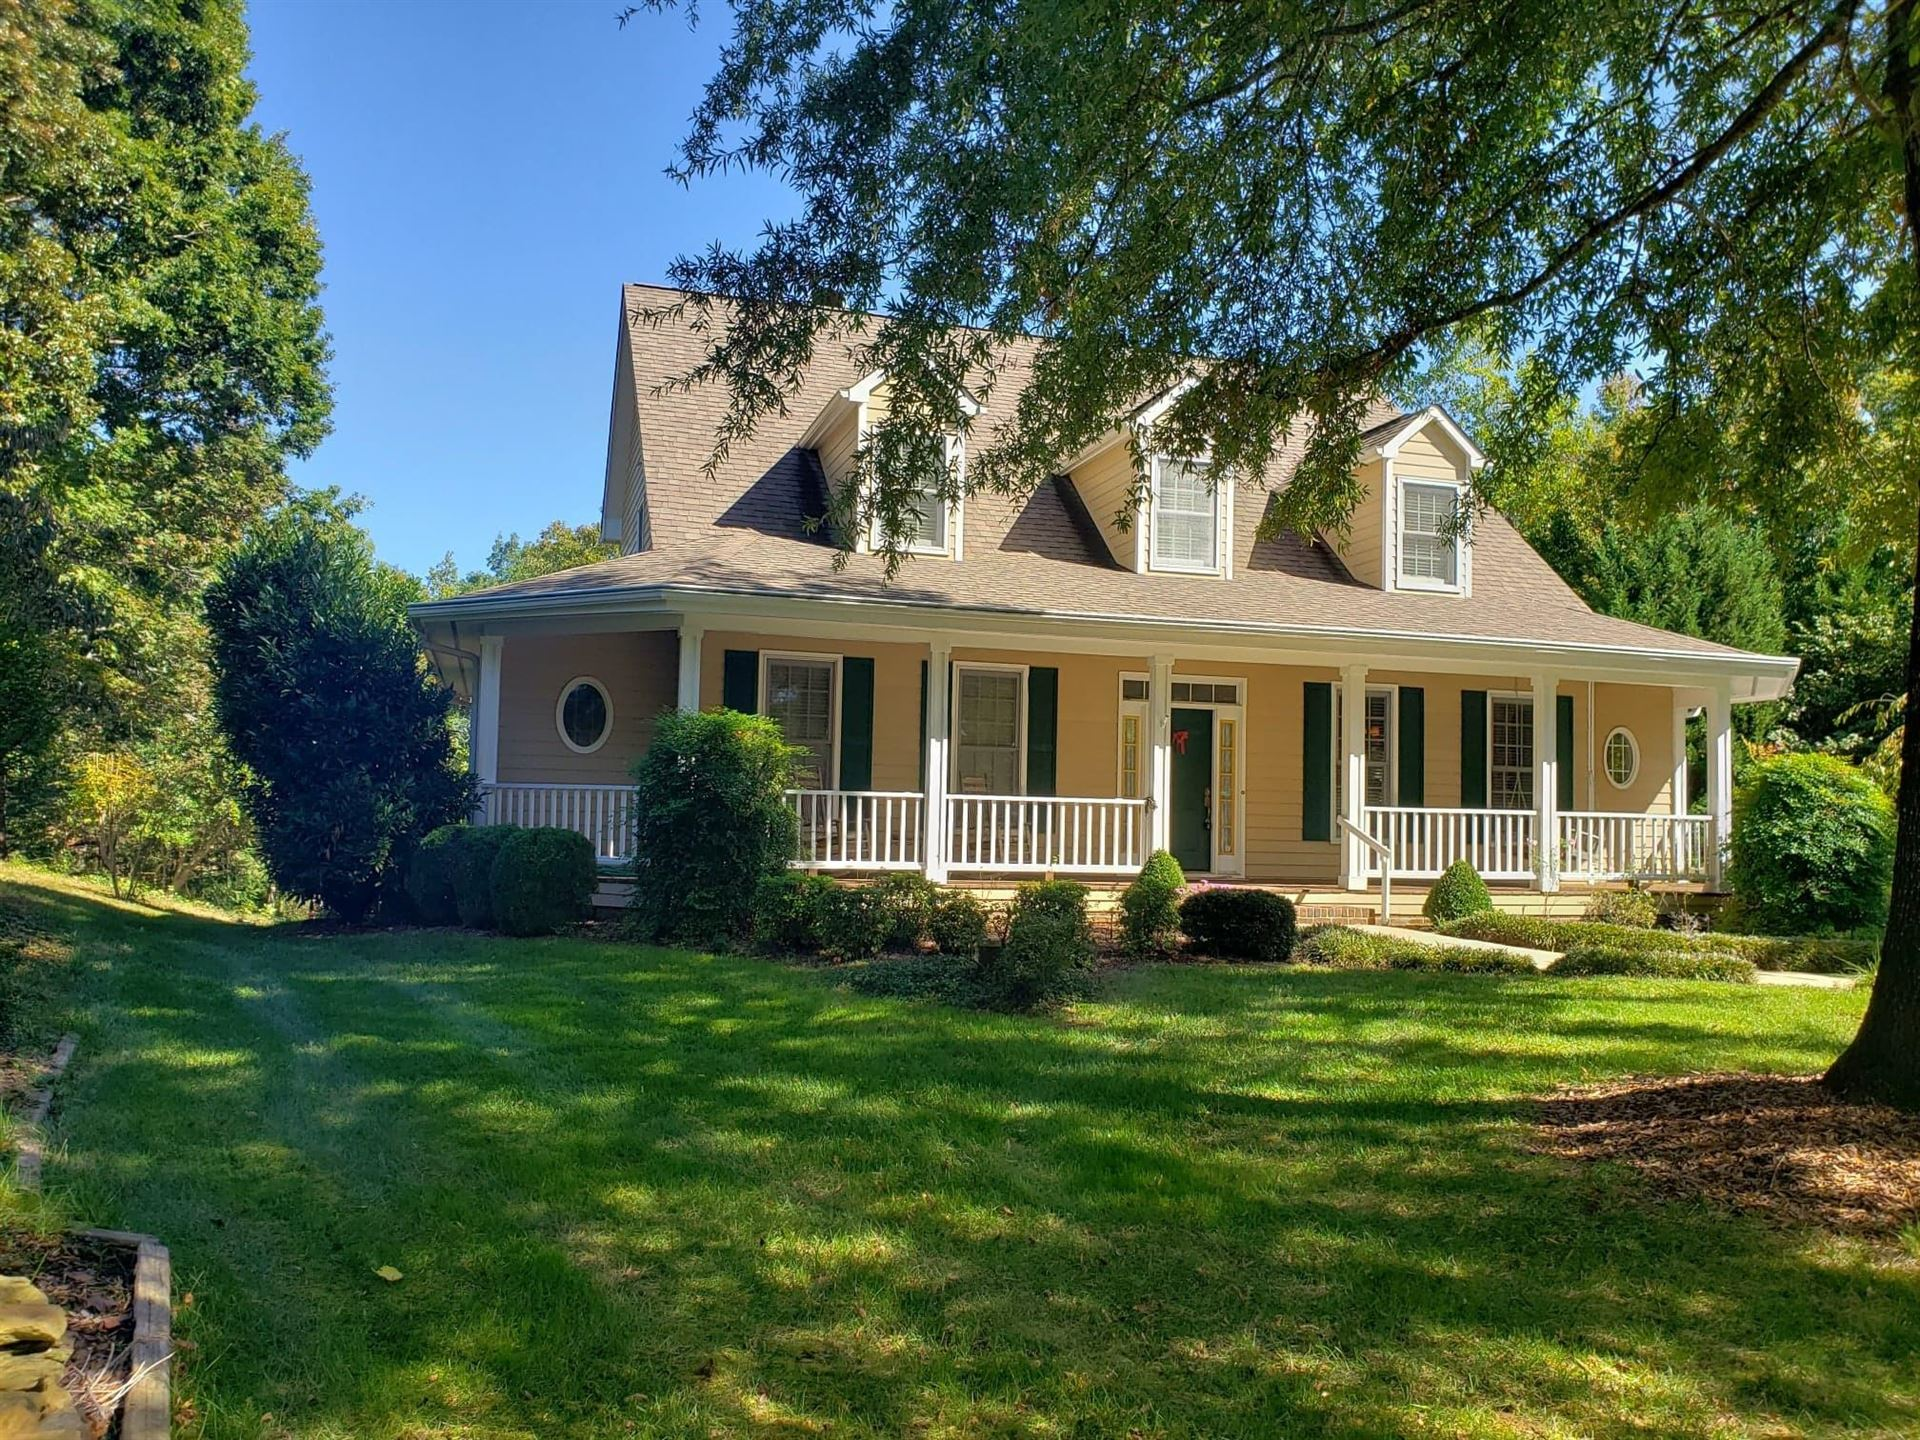 Photo for 305 Goose Point, Spring City, TN 37381 (MLS # 1133121)